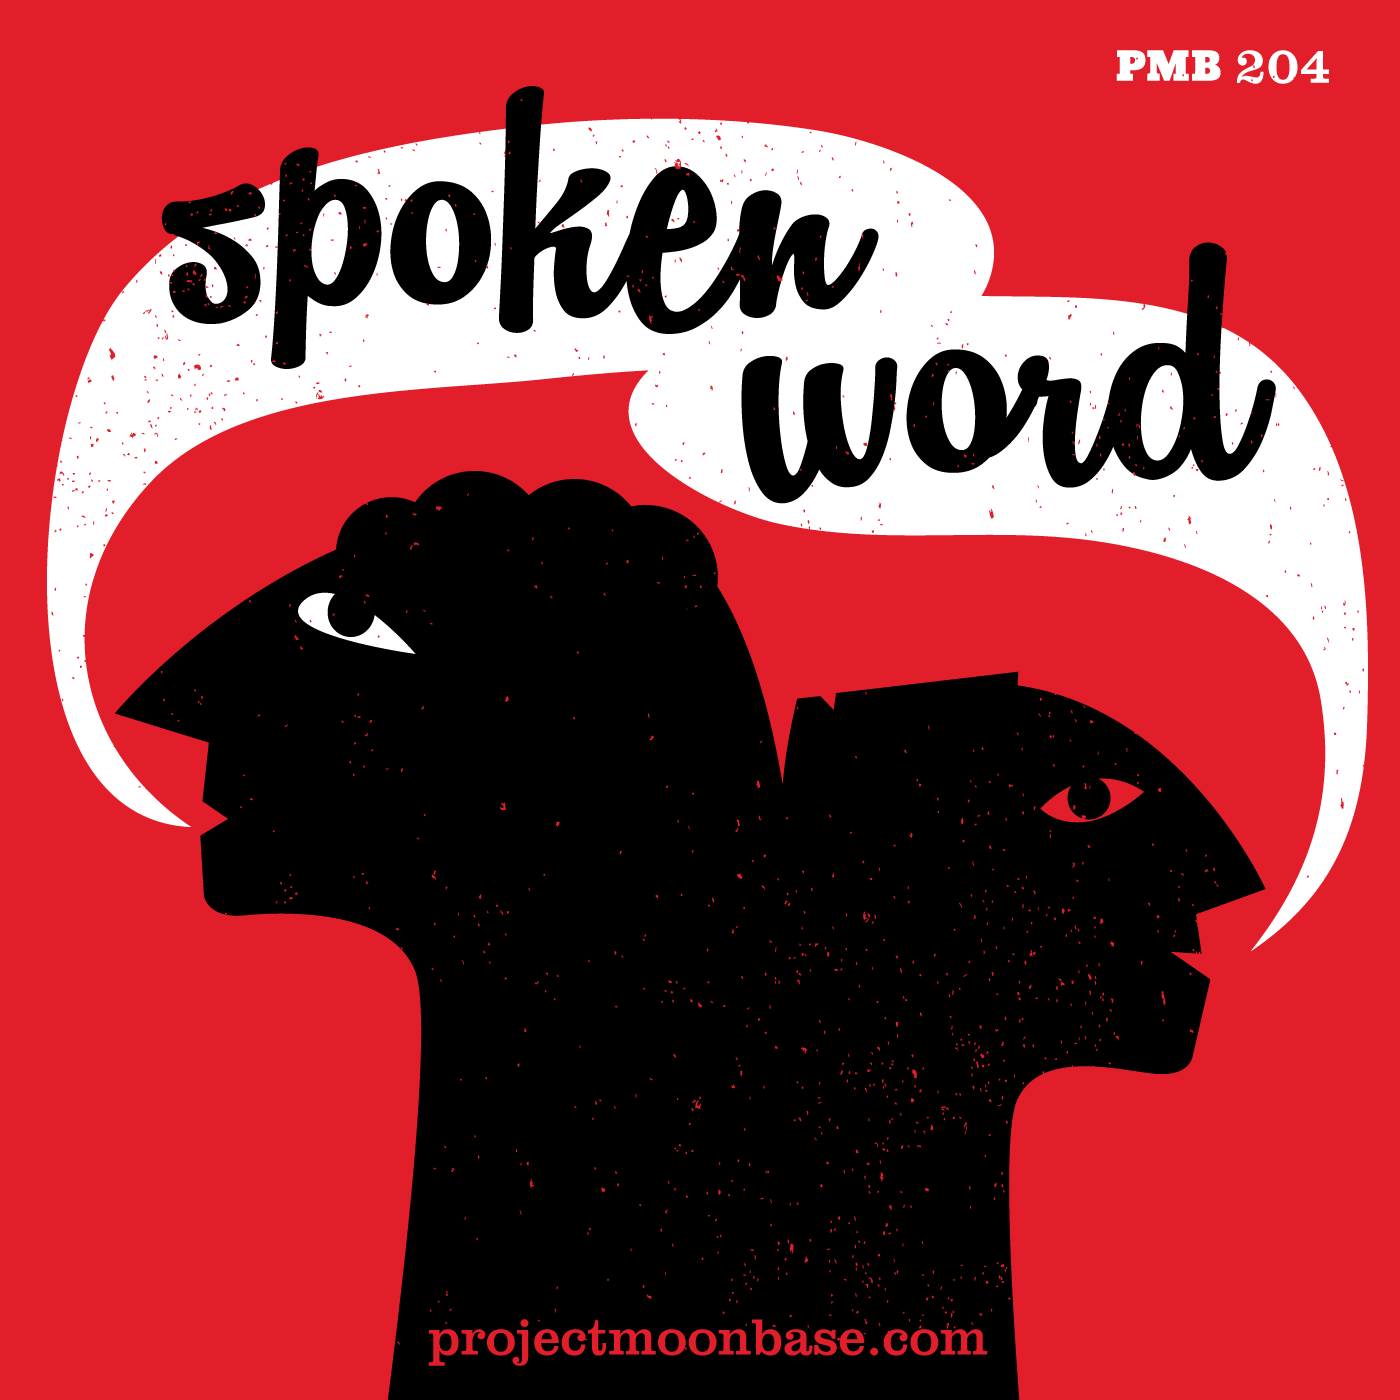 PMB204: Spoken Word